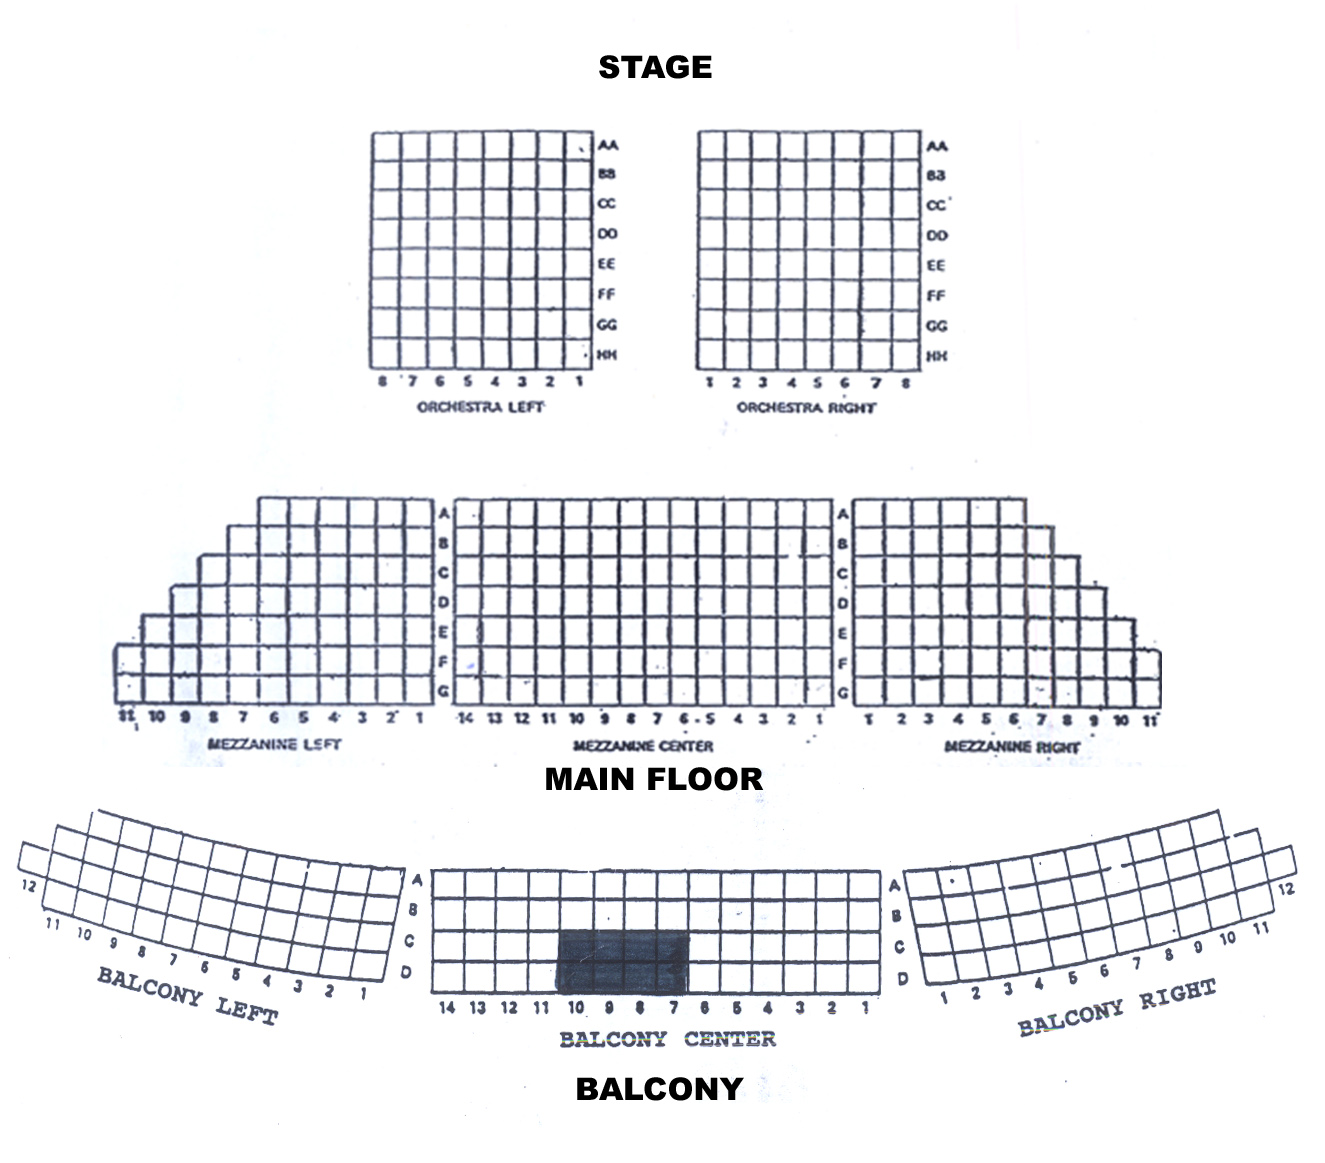 Tickets Events And Conferences. Knickerbocker Theatre. Seat. Devos Hall Seating Diagram At Scoala.co